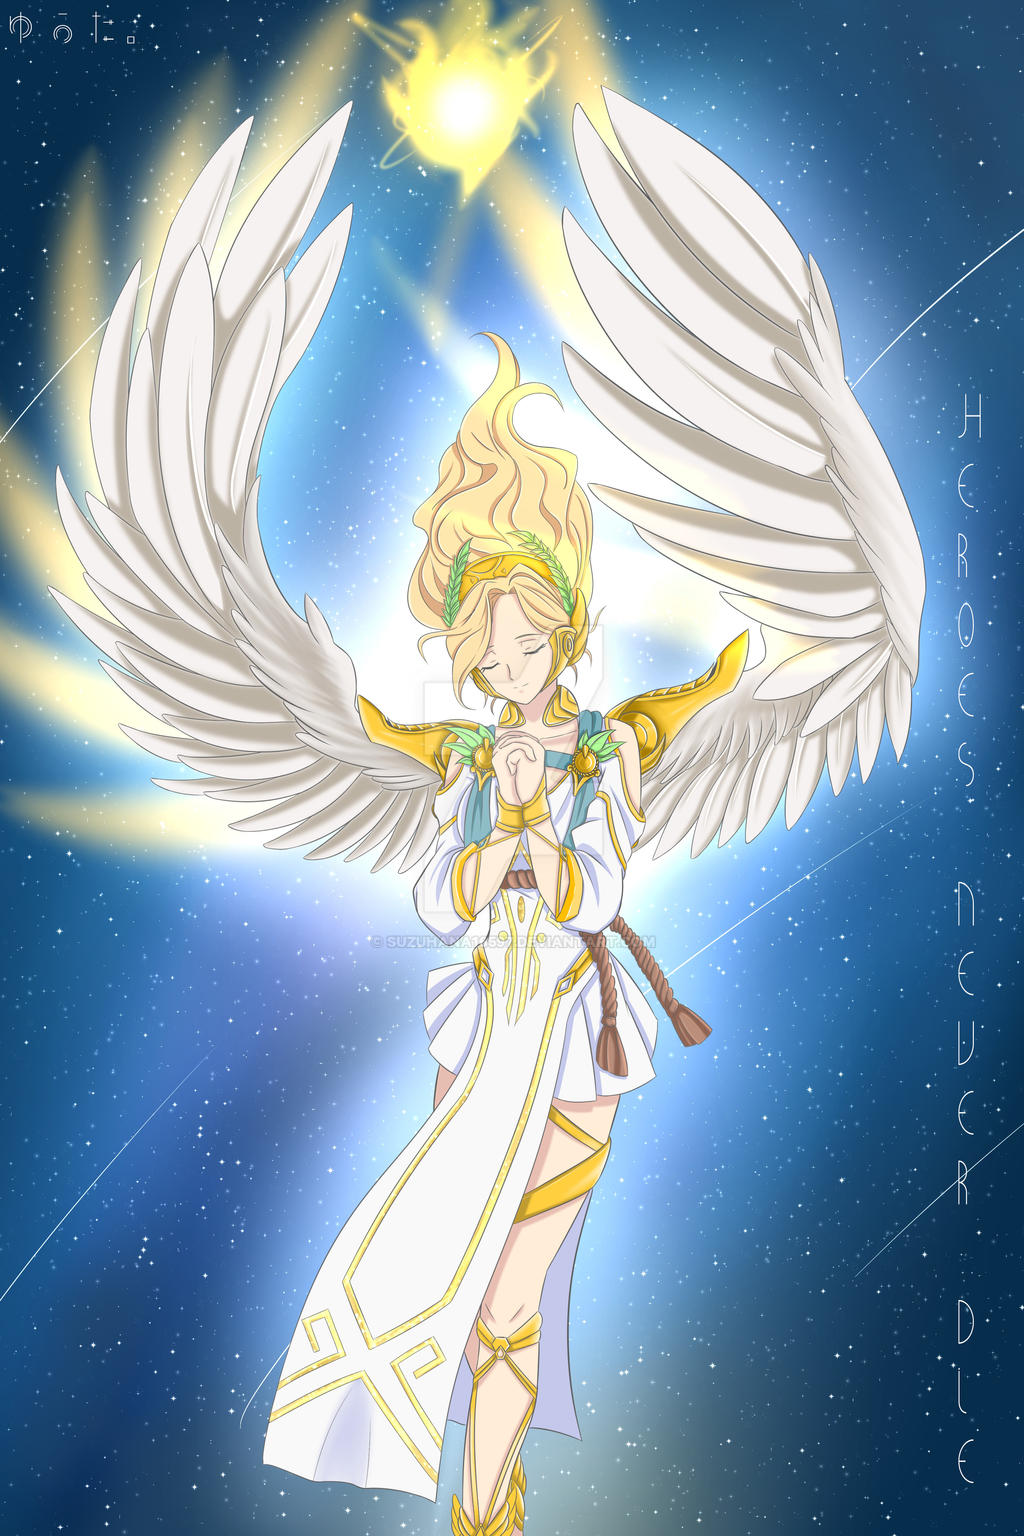 Winged Victory Mercy by OlchaS on DeviantArt